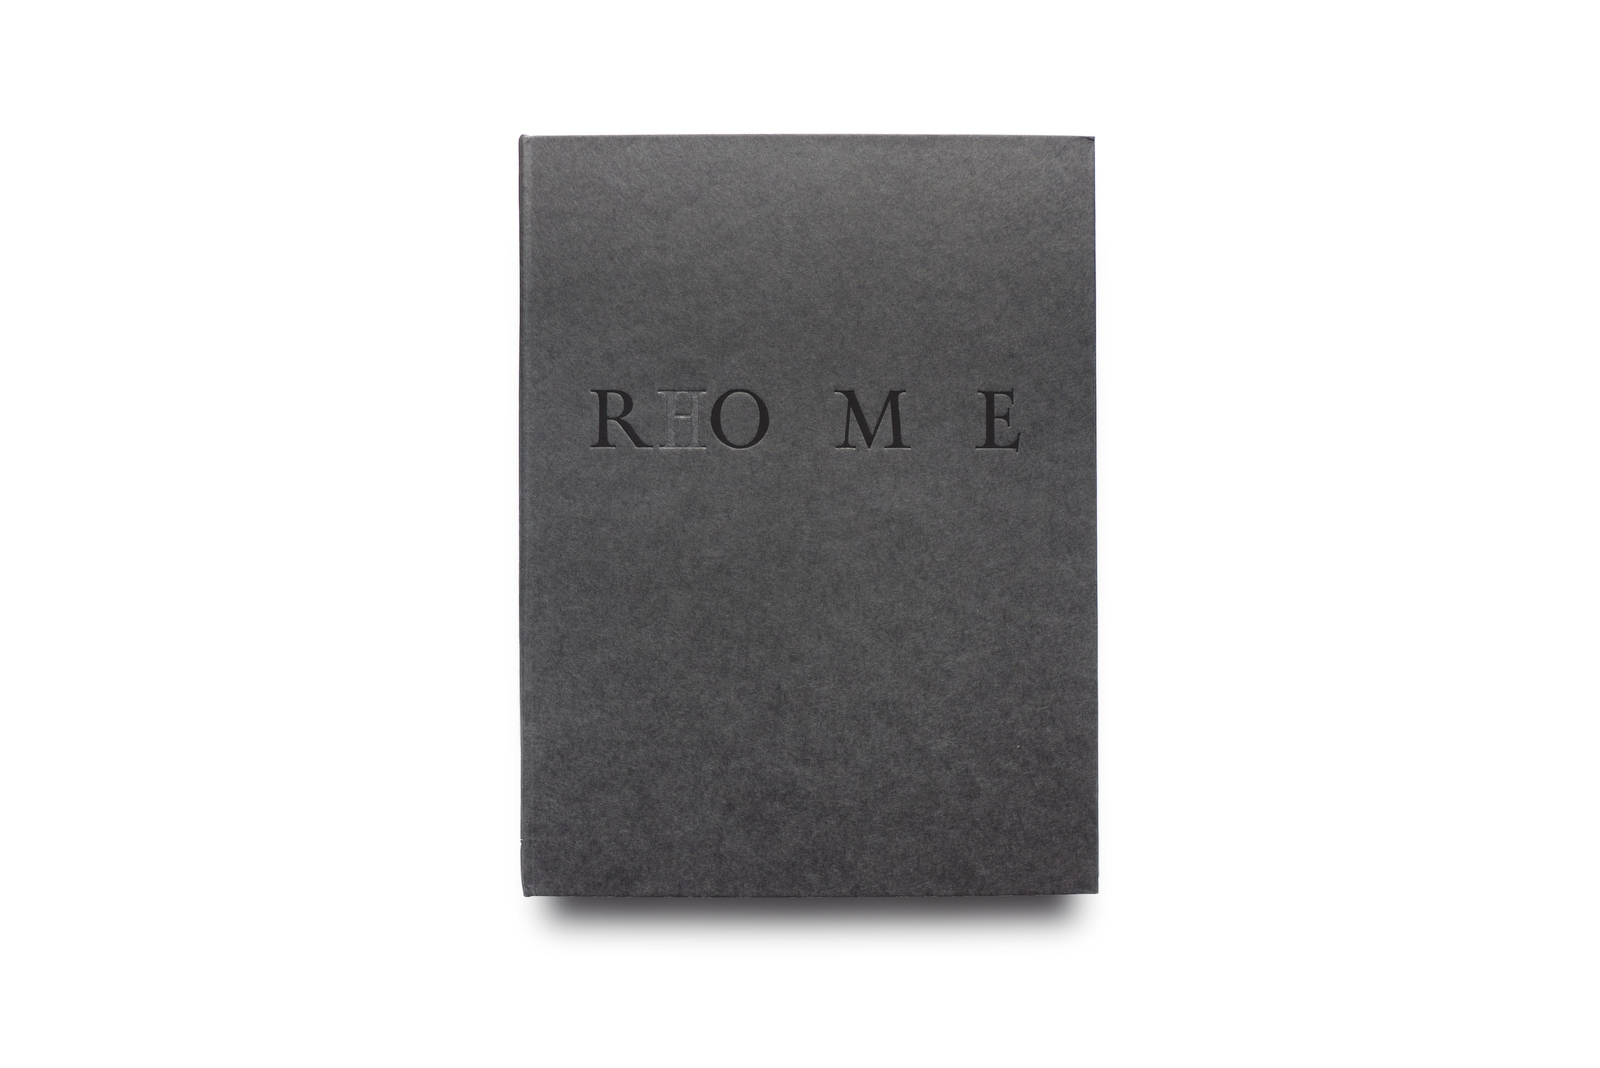 Rhome book reproductions_01